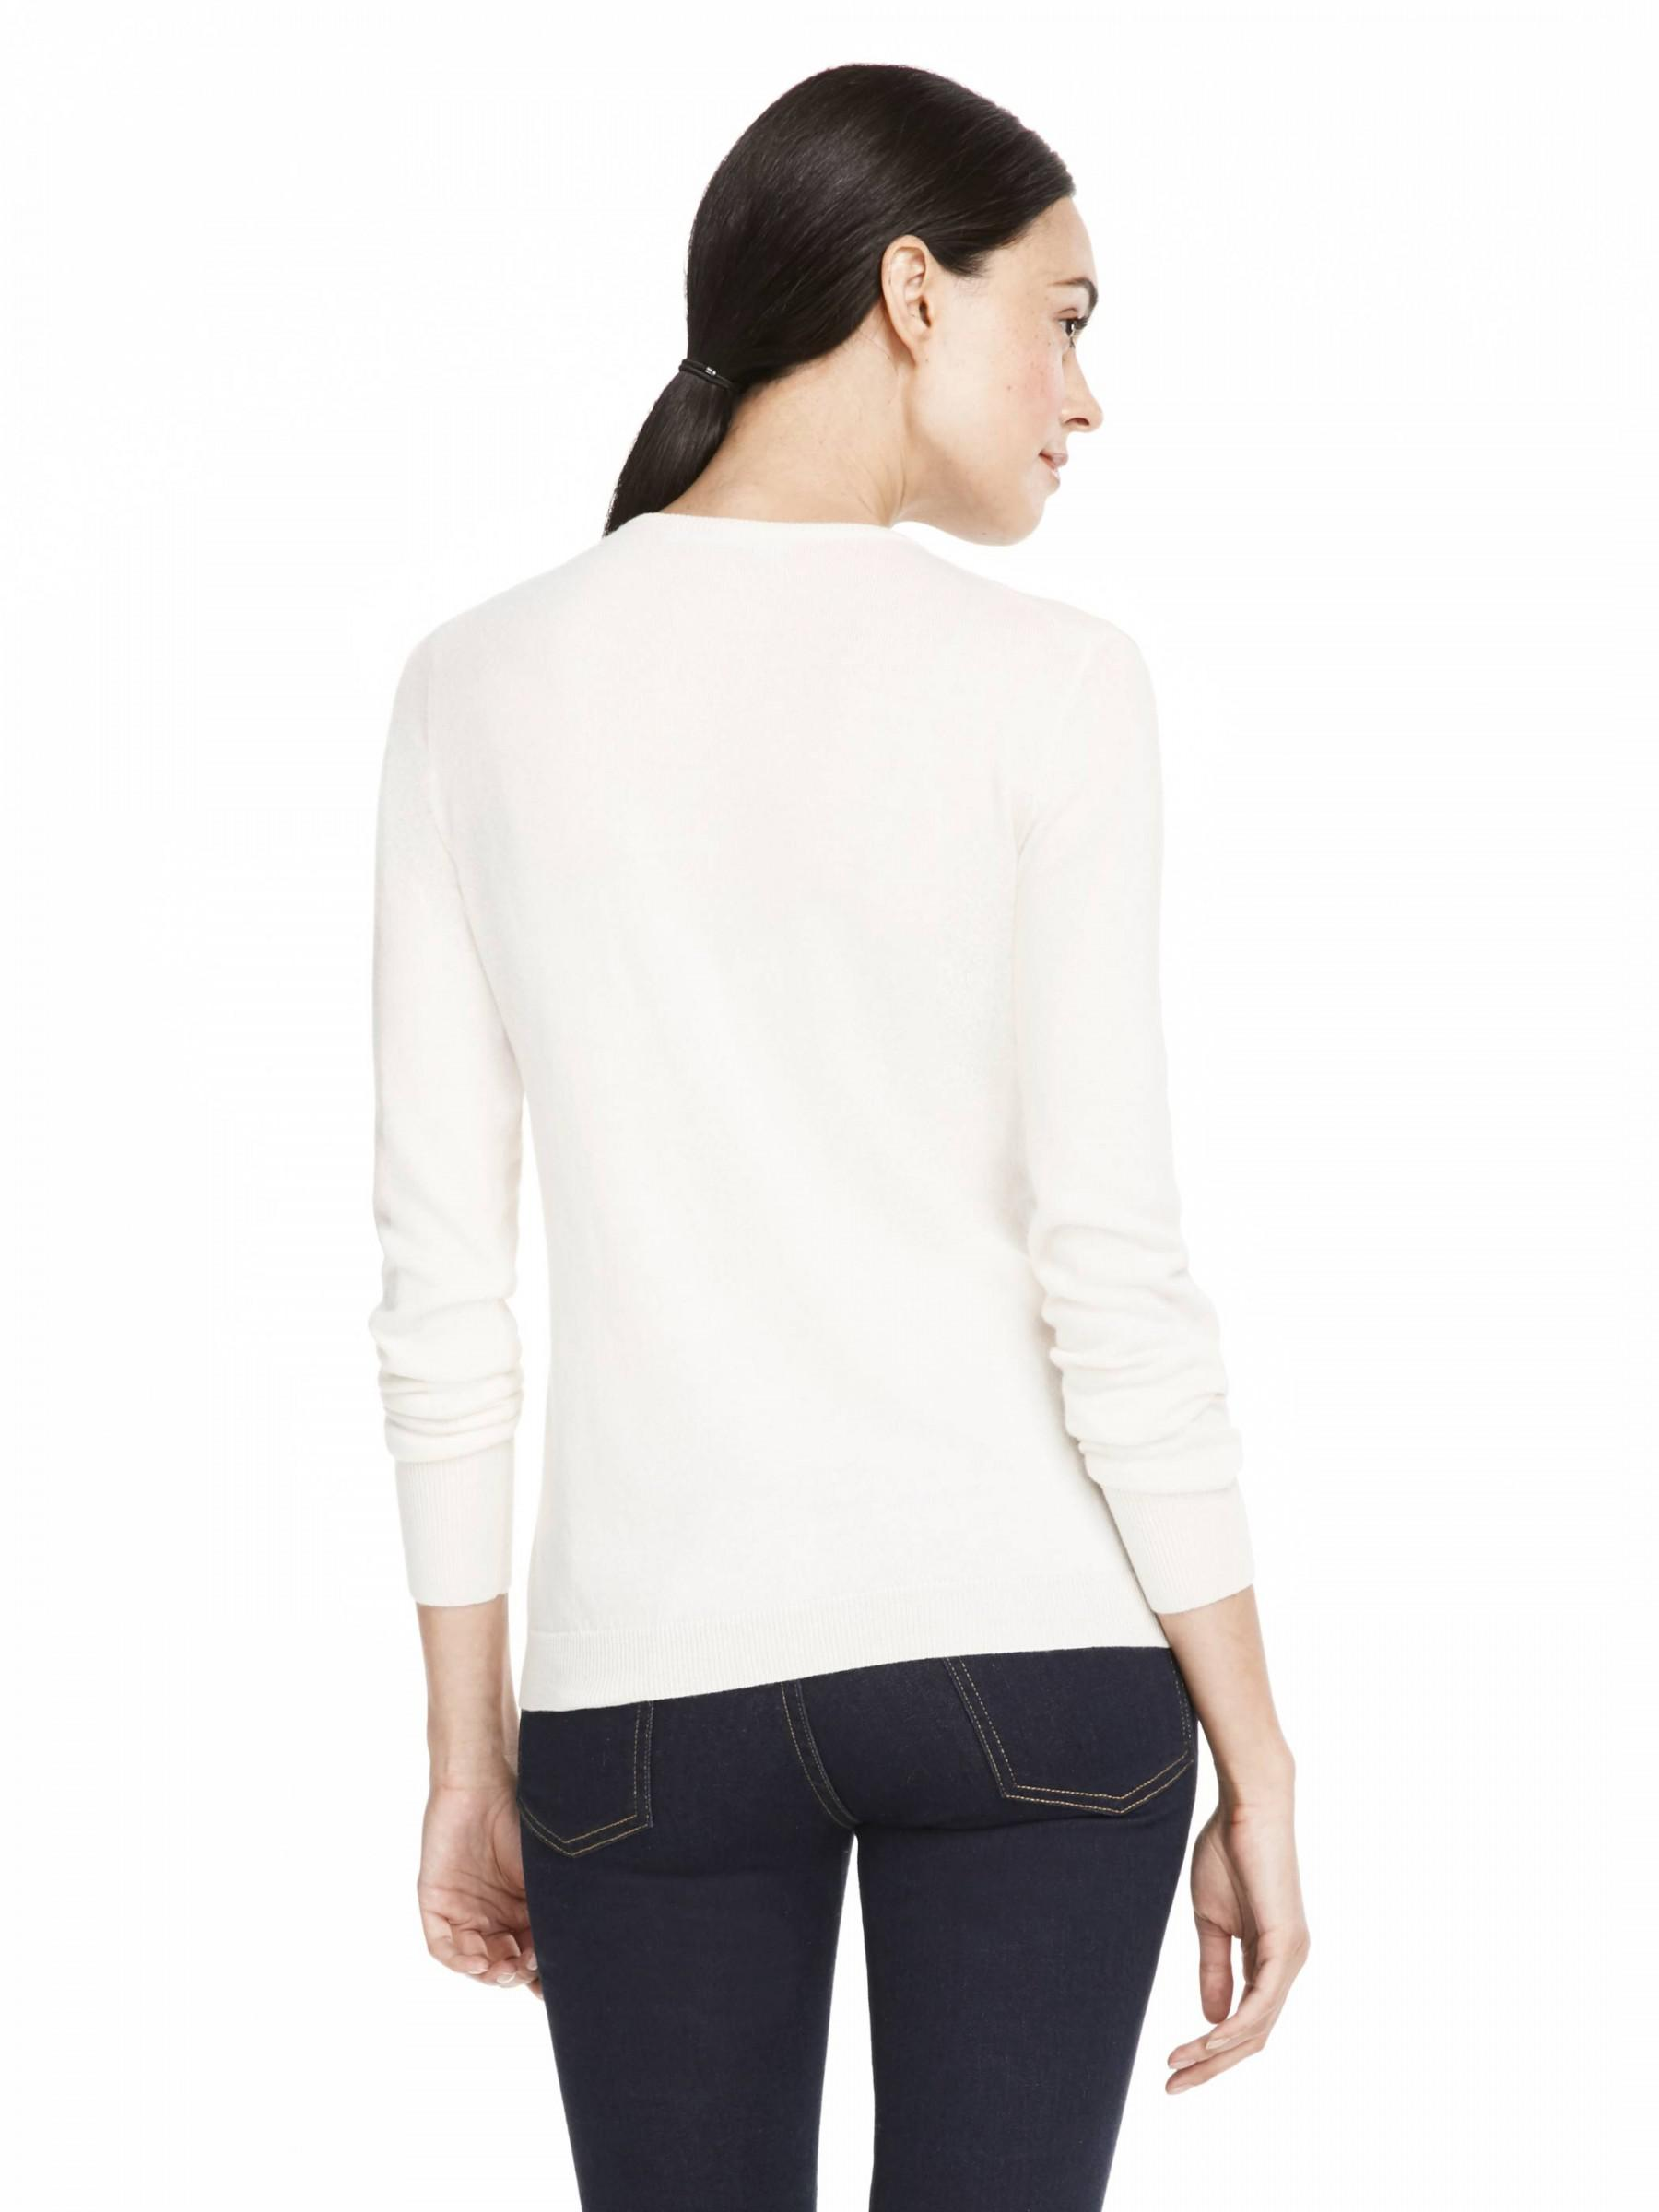 Draper james Lace Panel Cardigan in White | Lyst